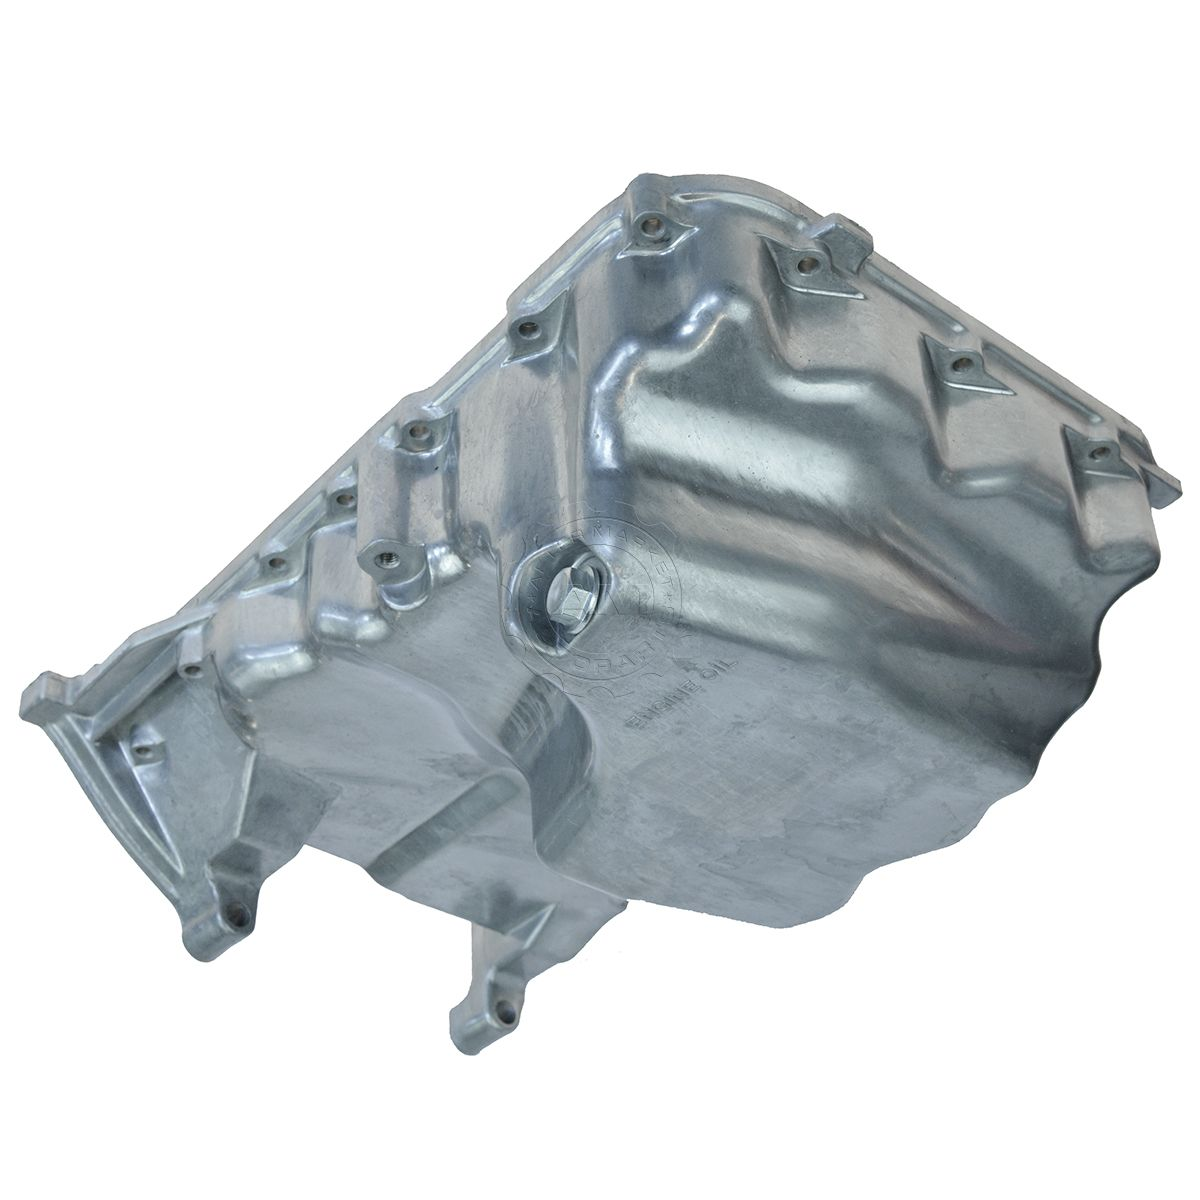 DORMAN 264-379 Engine Motor Oil Pan For Honda Accord